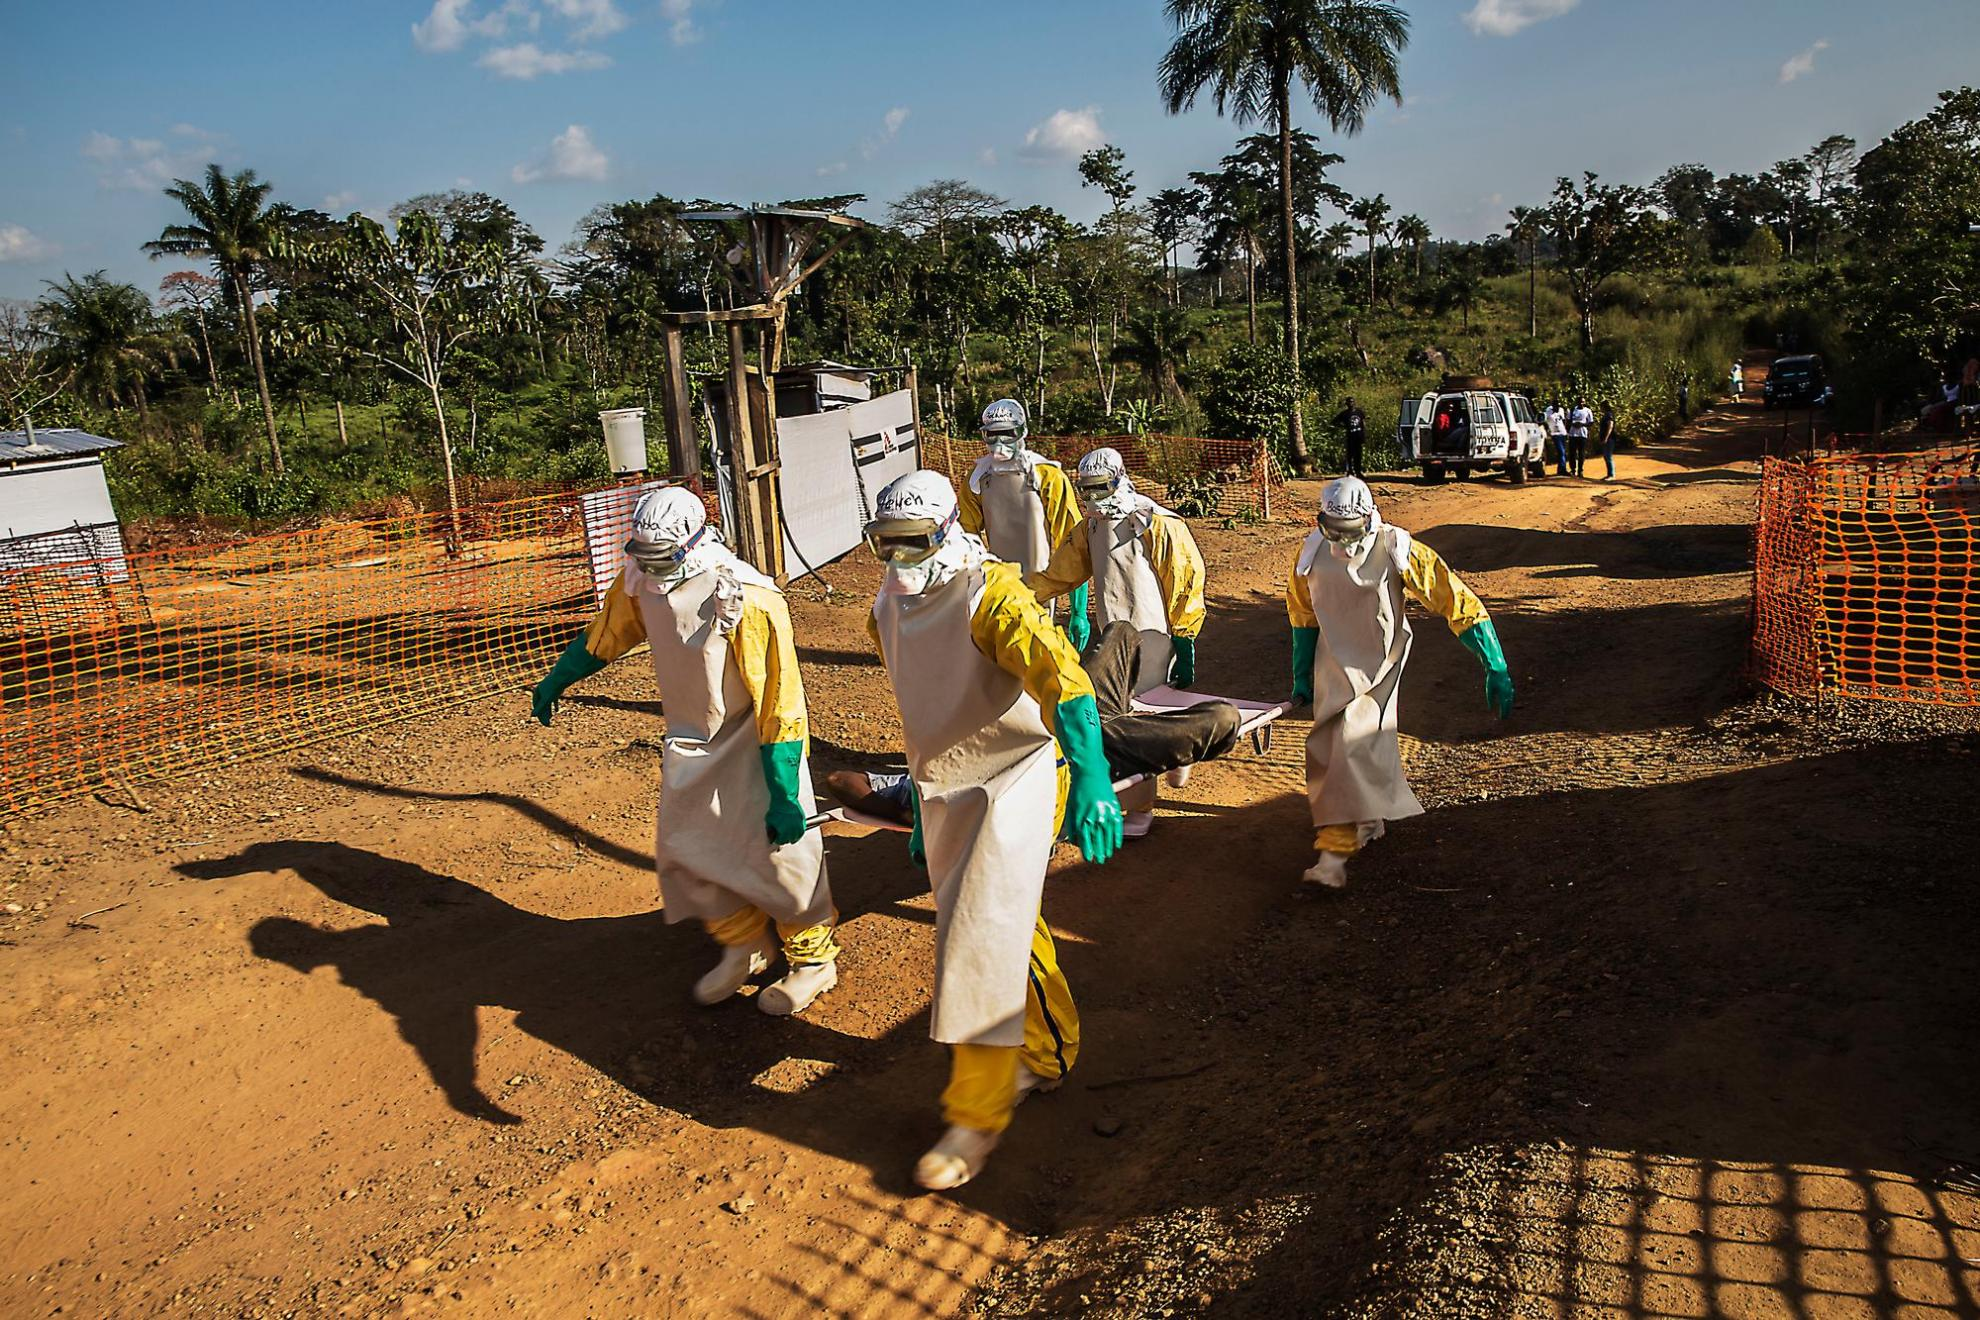 December 2014: A team of MSF healthcare workers carry an Ebola patient in Sierra Leone